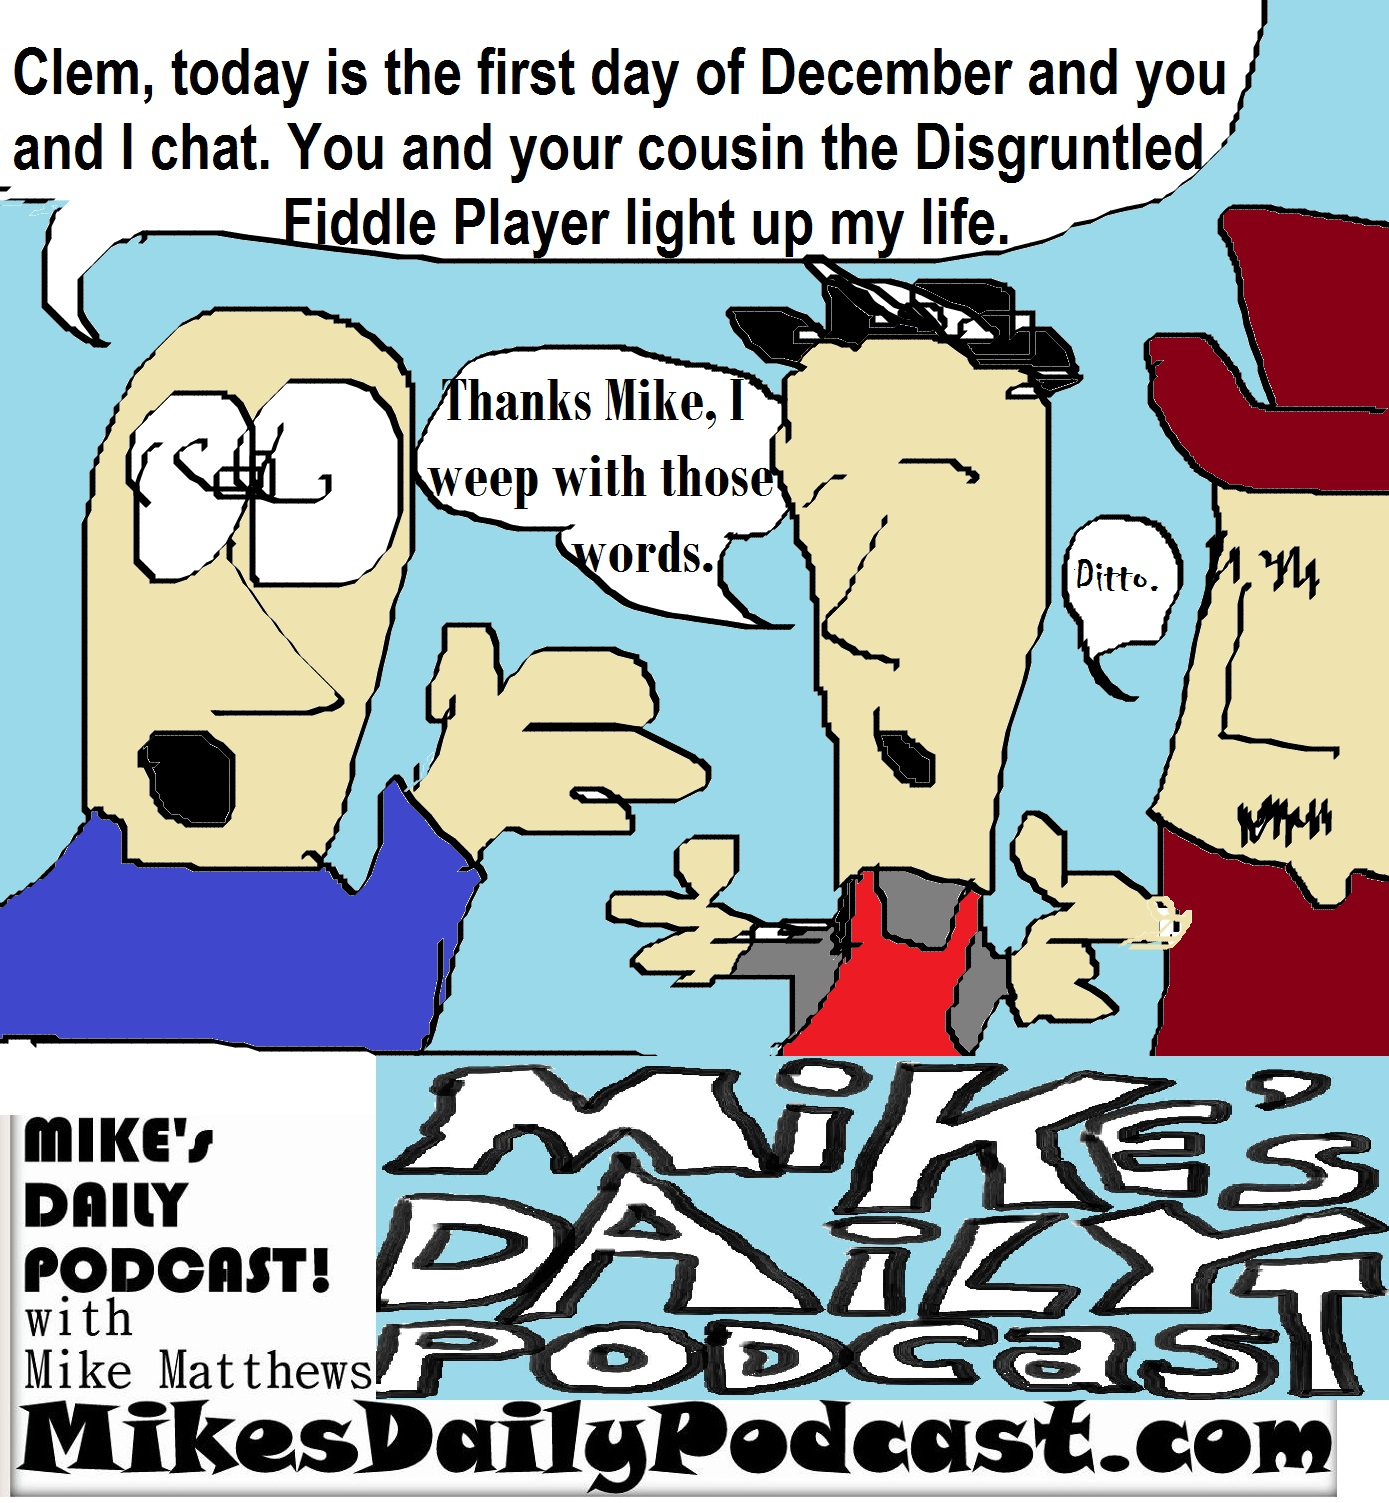 MIKEs DAILY PODCAST 978 Clem Disgruntled Fiddle Player